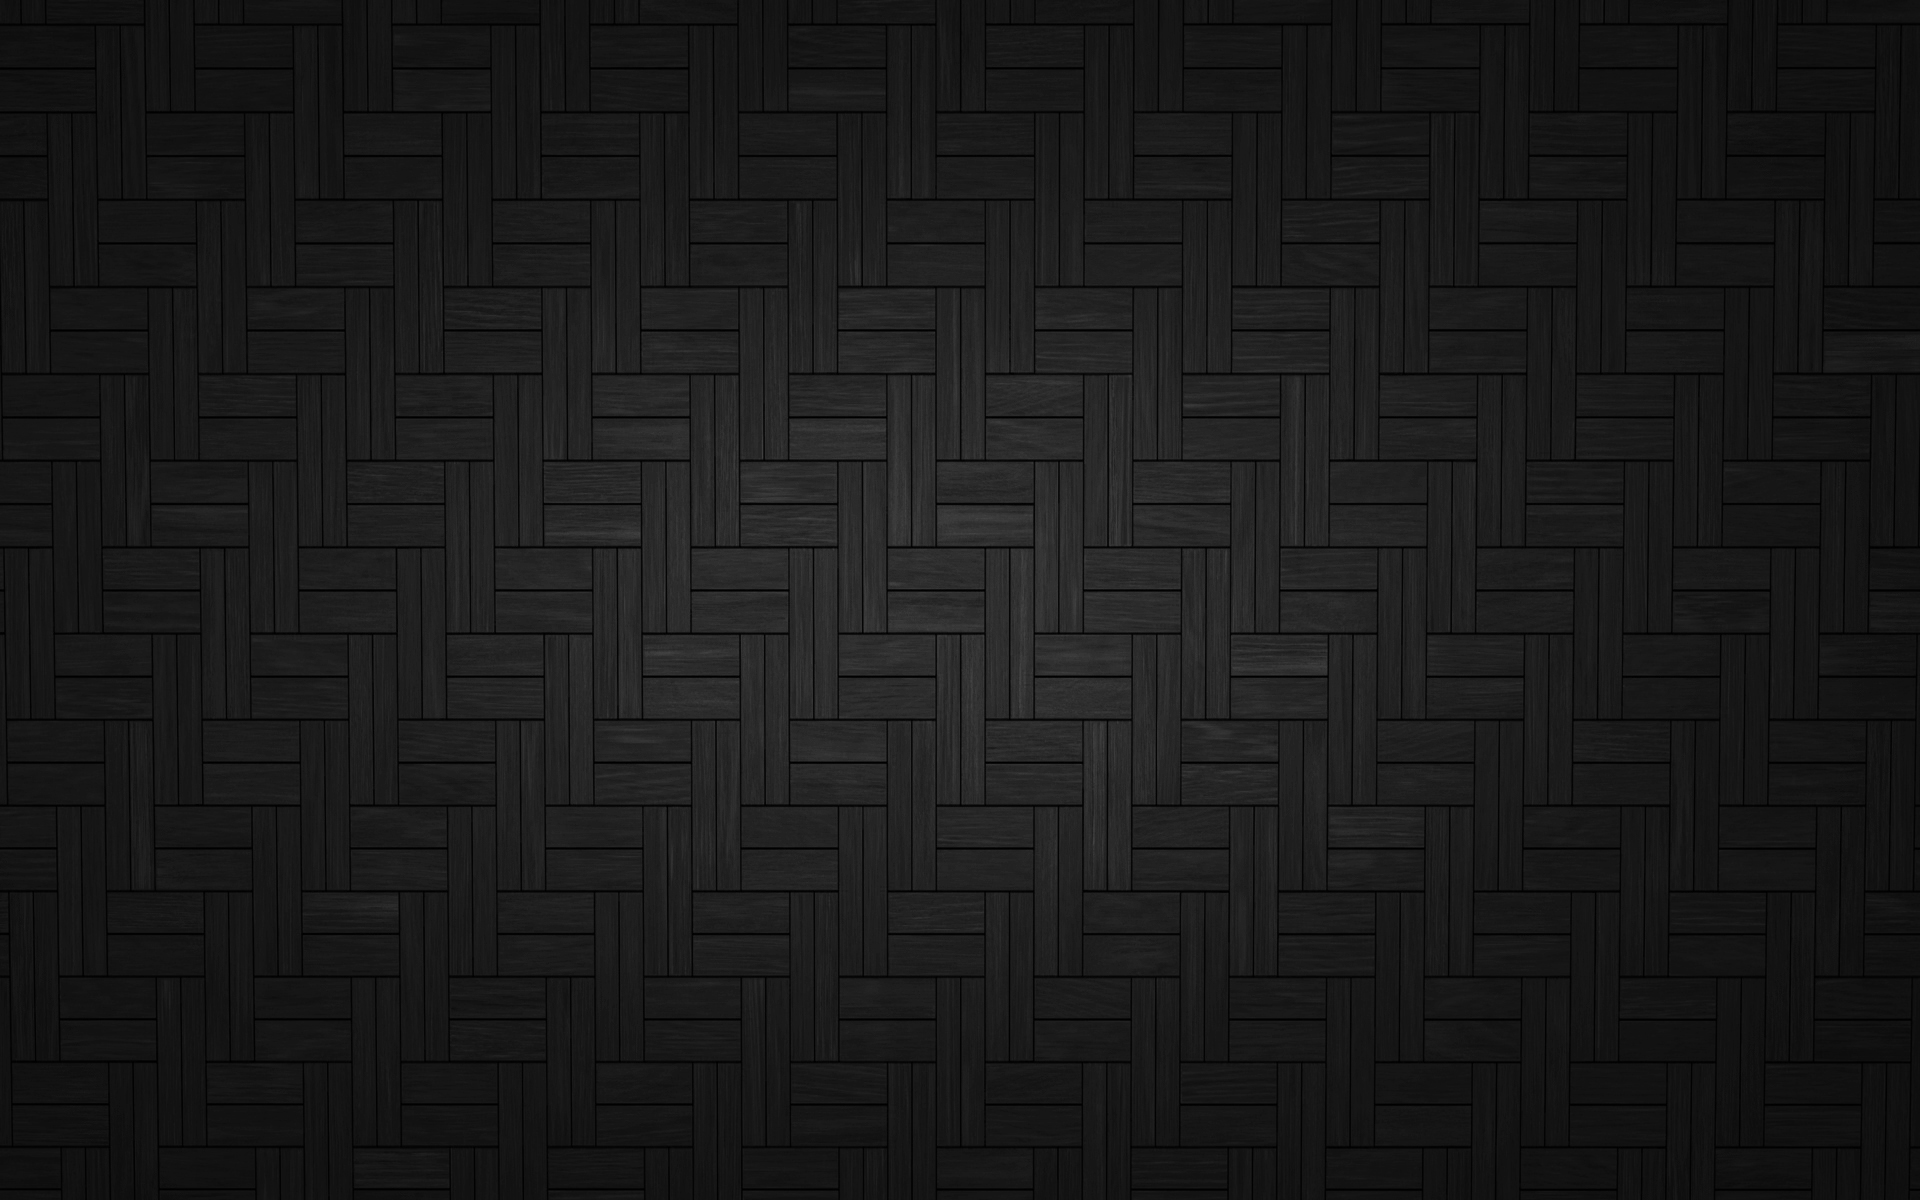 free download black wallpaper 10 1920x1200 for your desktop mobile tablet explore 76 cool dark background black and white desktop wallpaper dark souls wallpaper dark wallpaper wallpapersafari